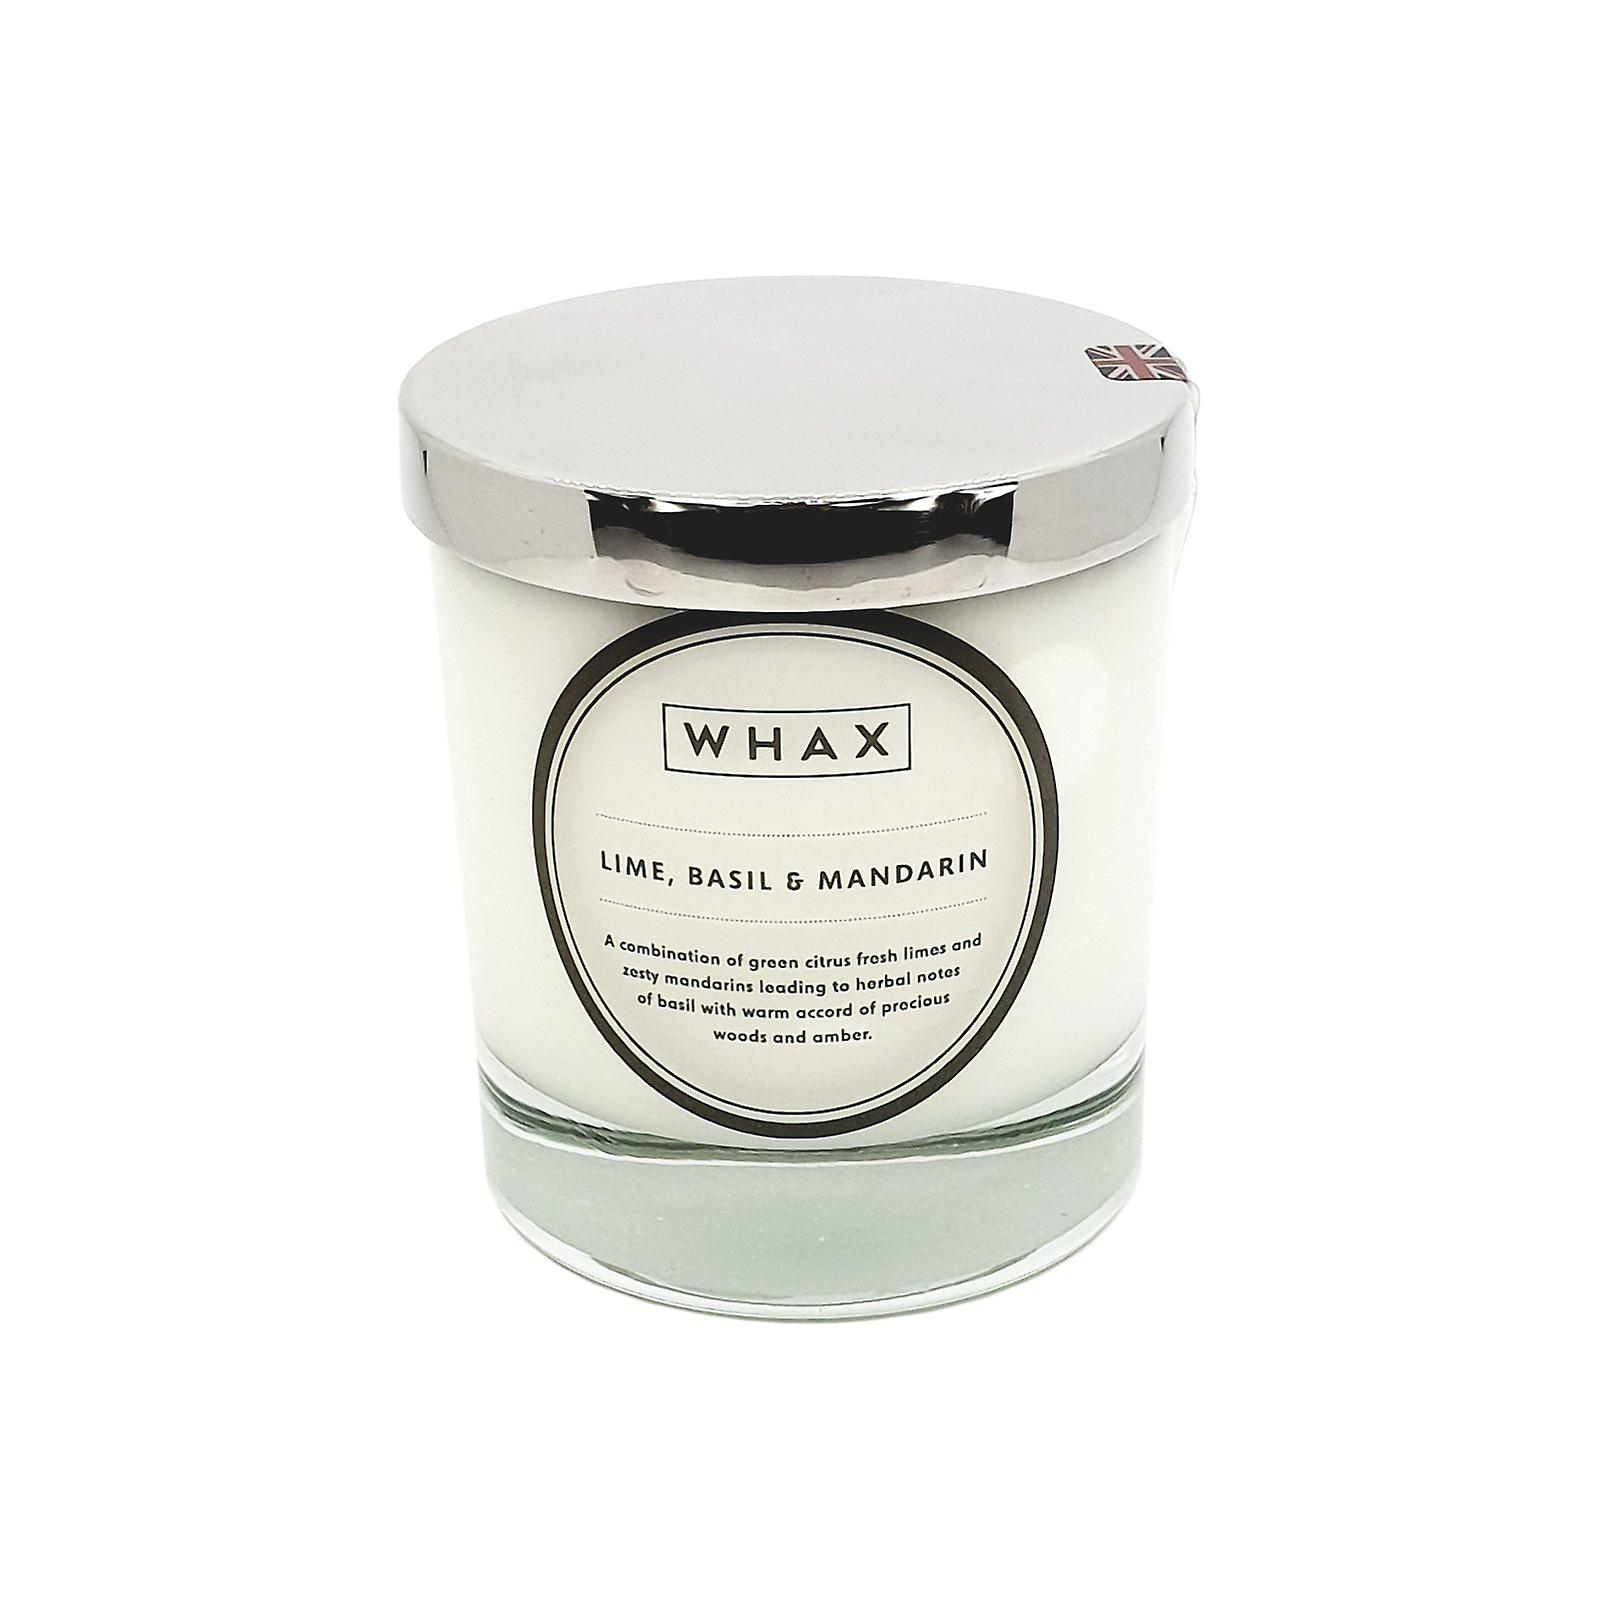 Lime, basil & mandarin luxury scented candle